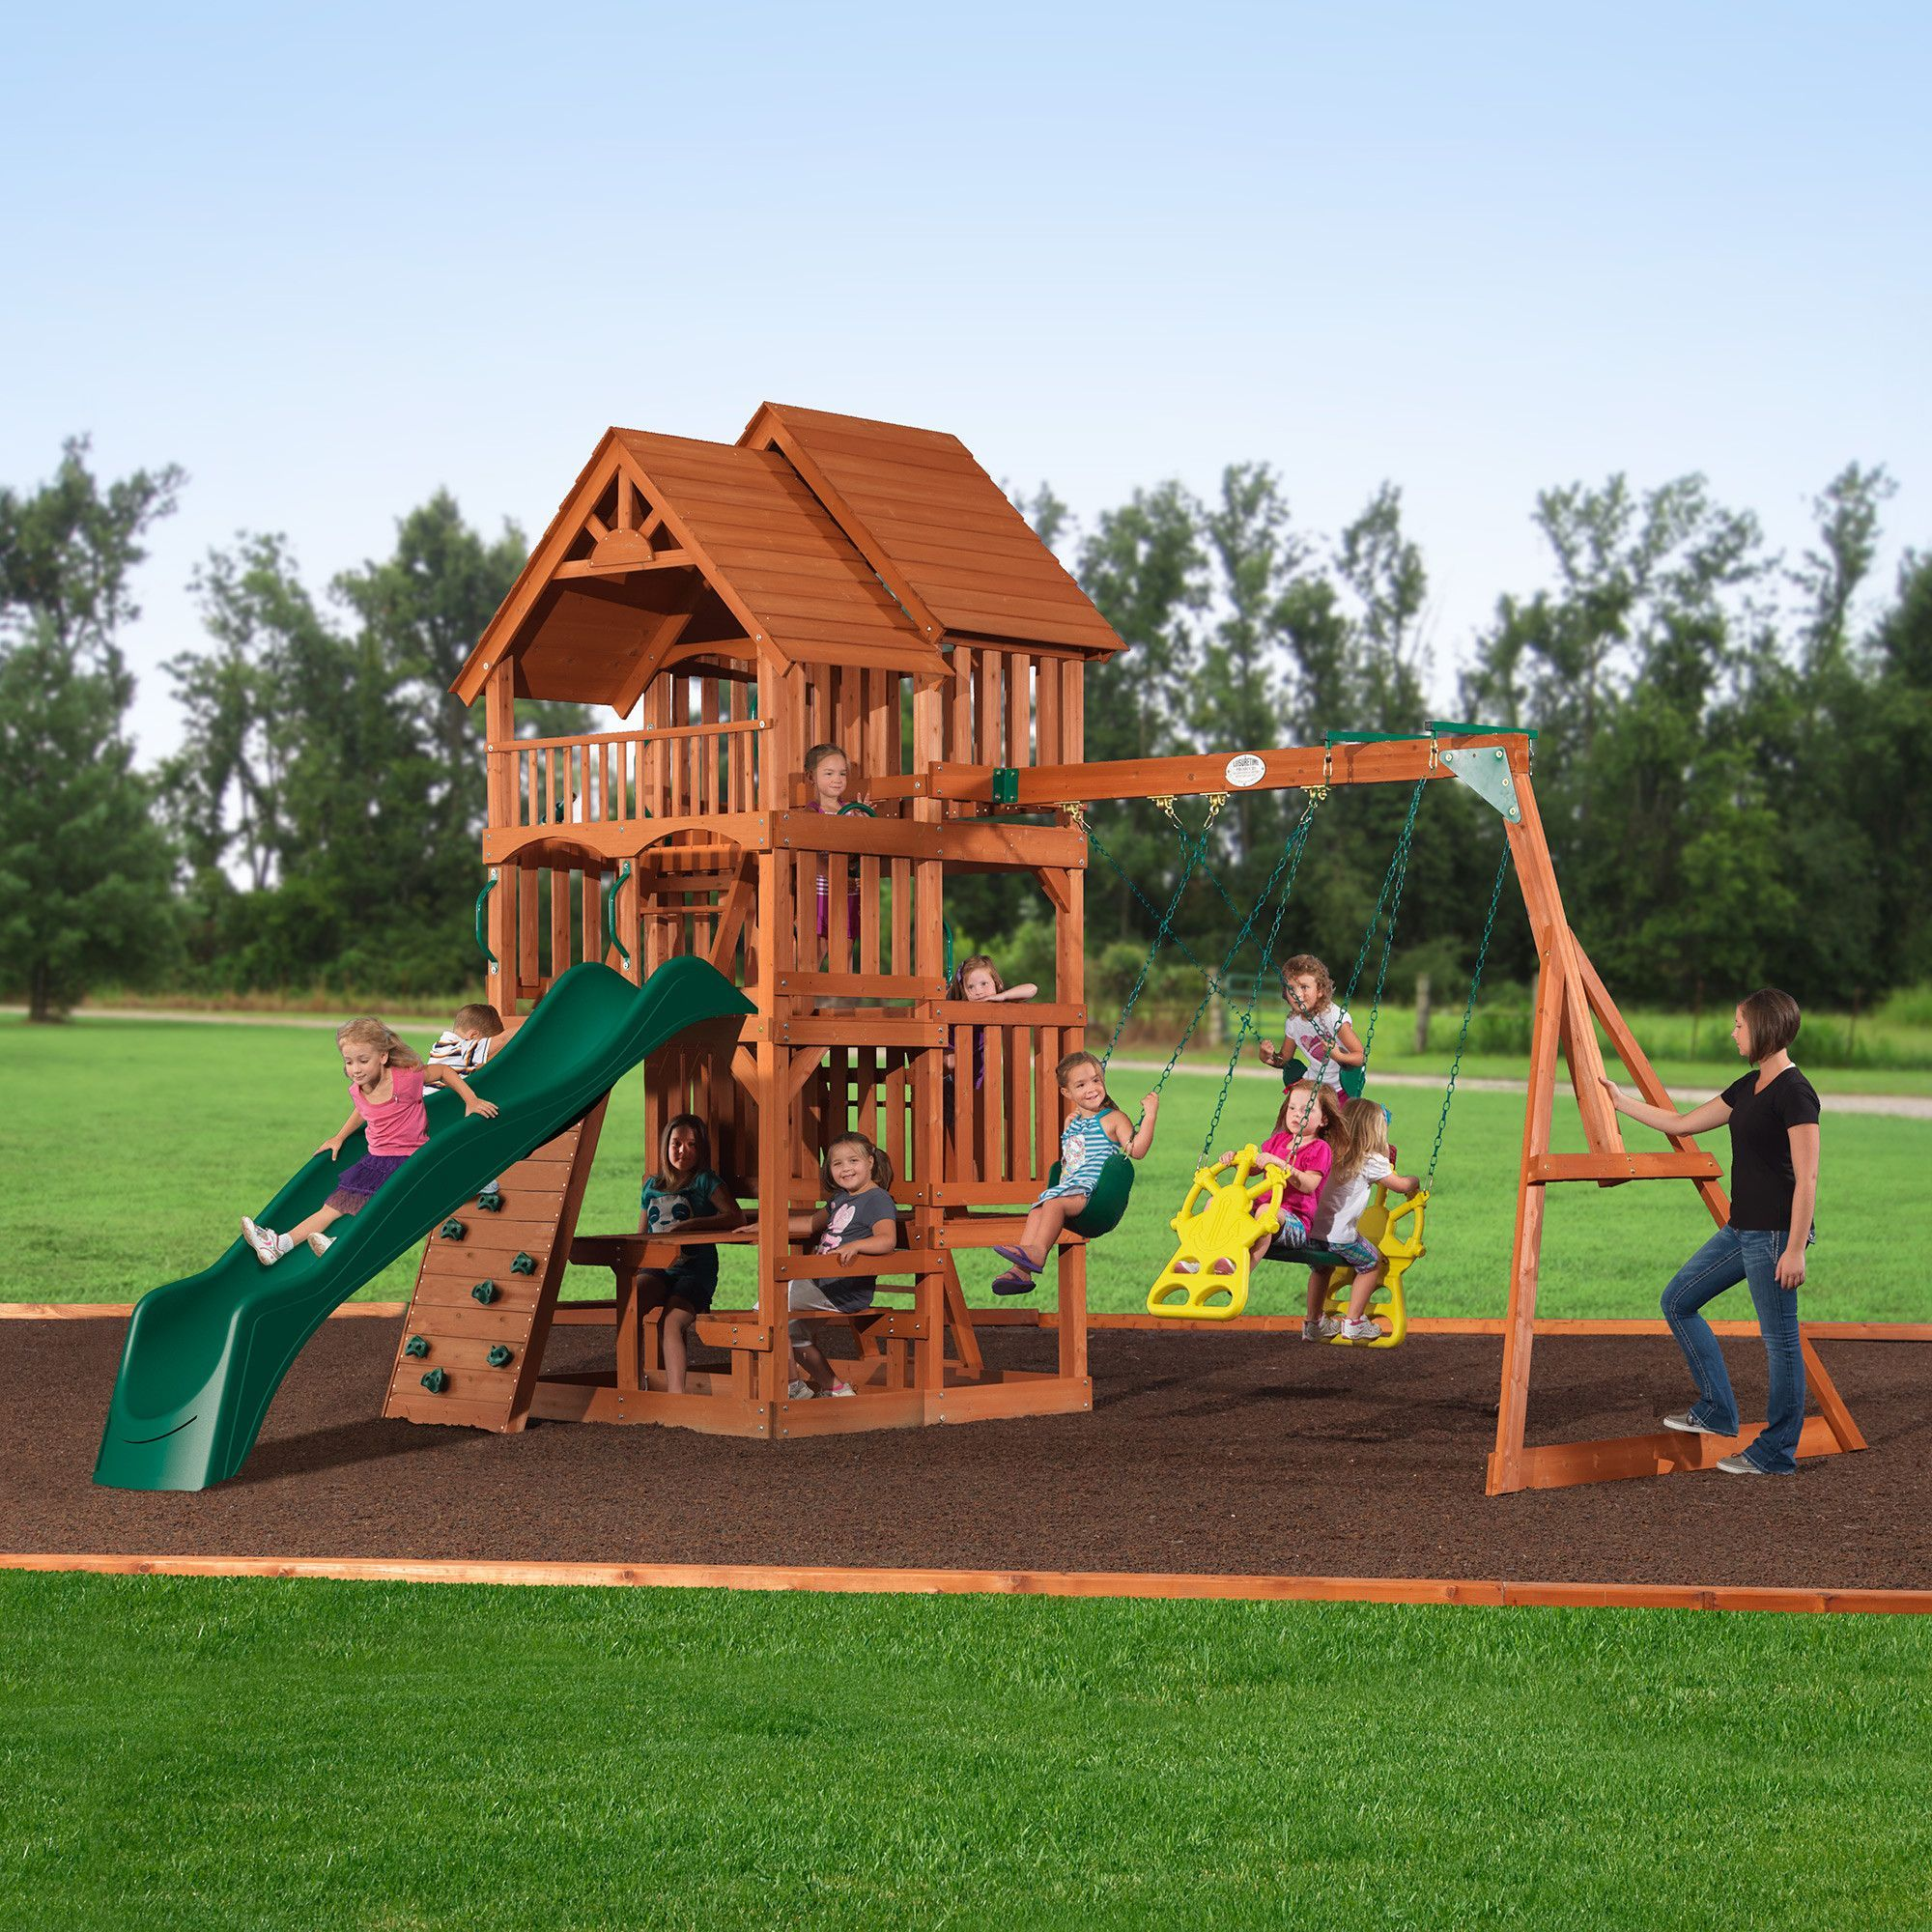 highlander wooden swing set yard u0026 garden pinterest wooden